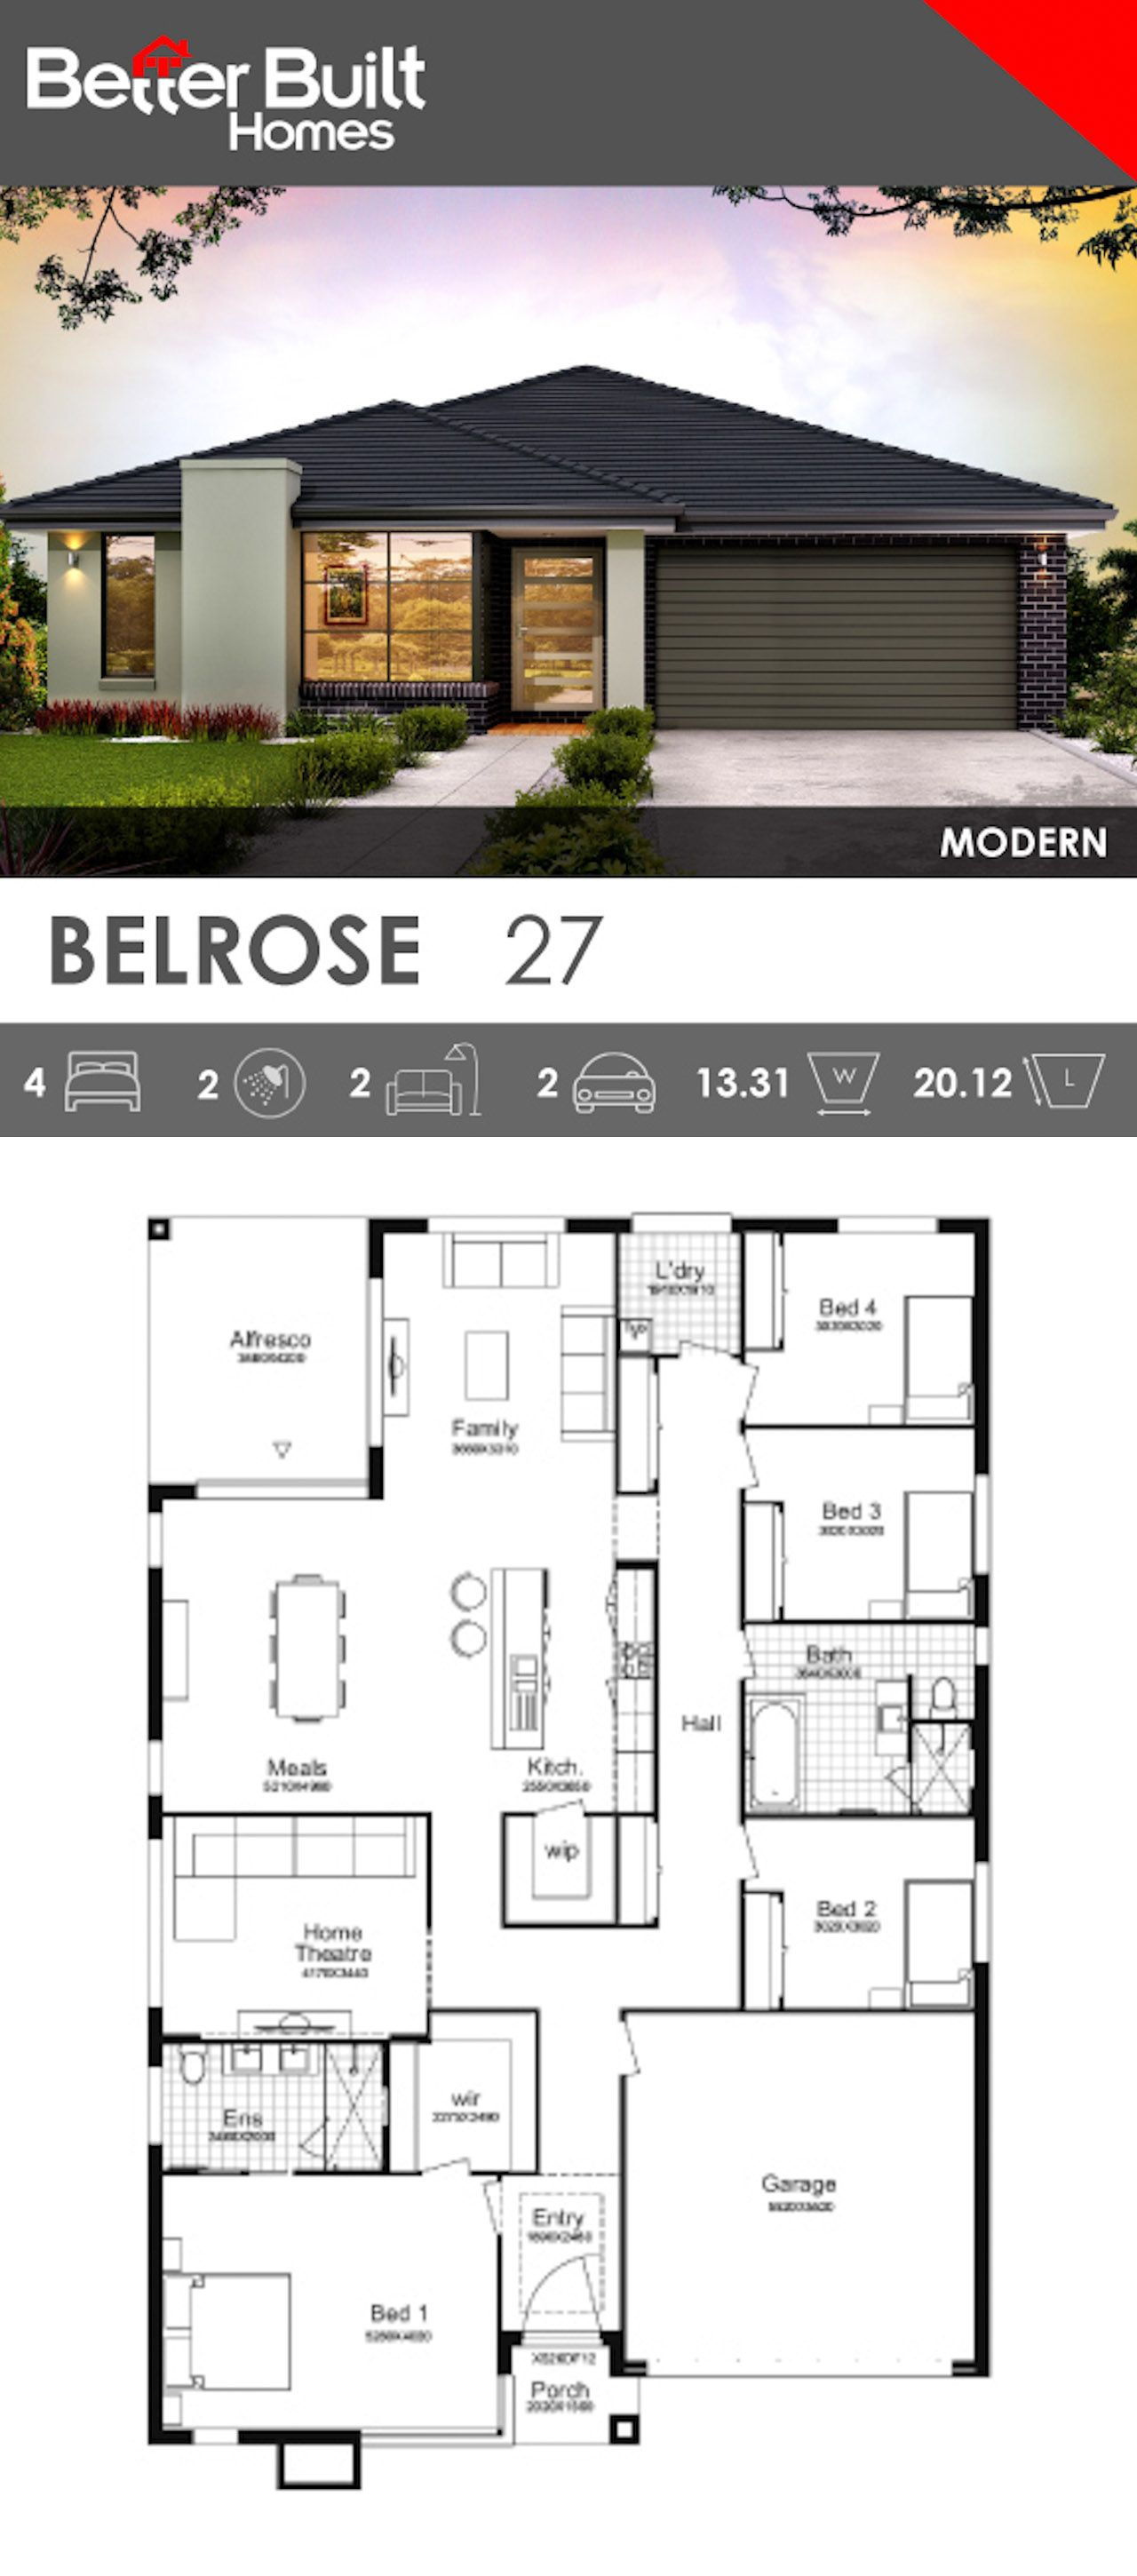 Single Storey House Design The Belrose 27 An Ideal Family Home For A Growing Family The Belrose Single Storey House Plans Family House Plans My House Plans